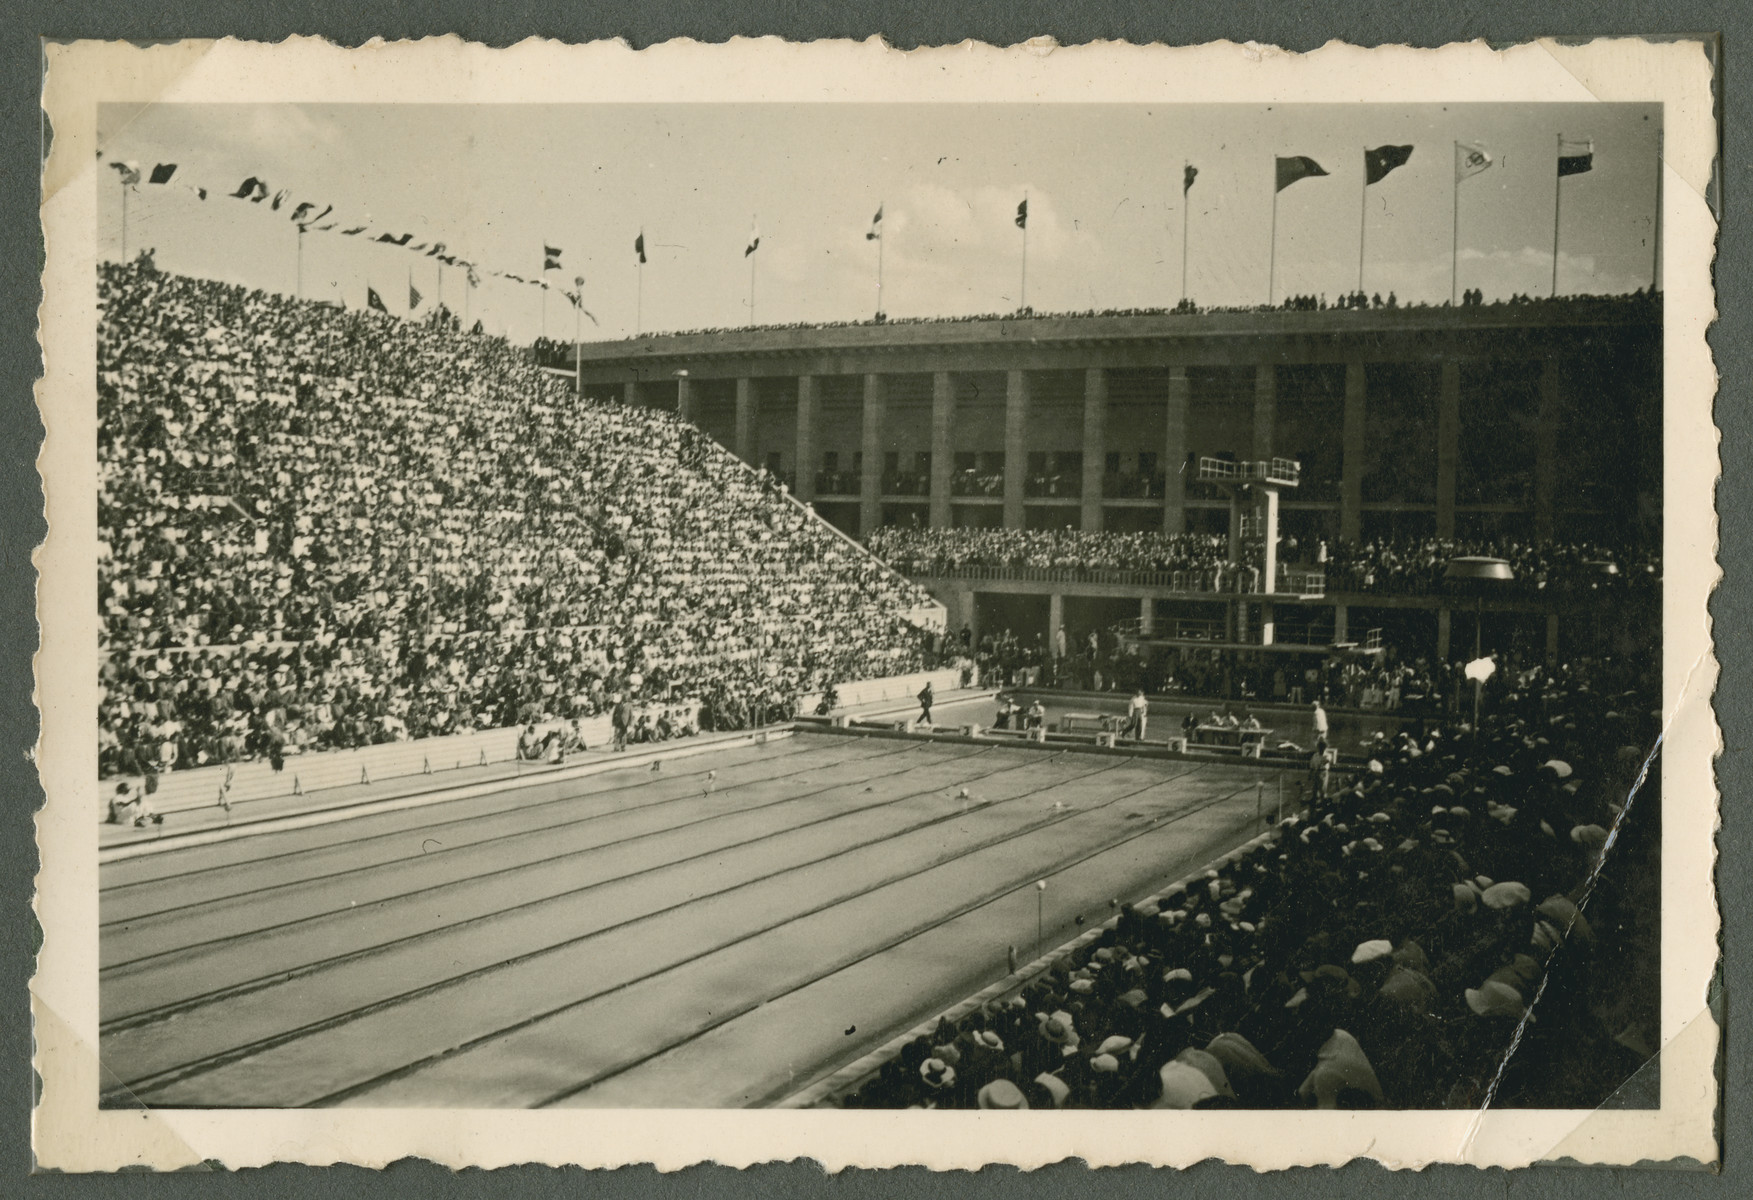 Spectators fill the bleachers of the swimming stadium as they await the start of a competition.